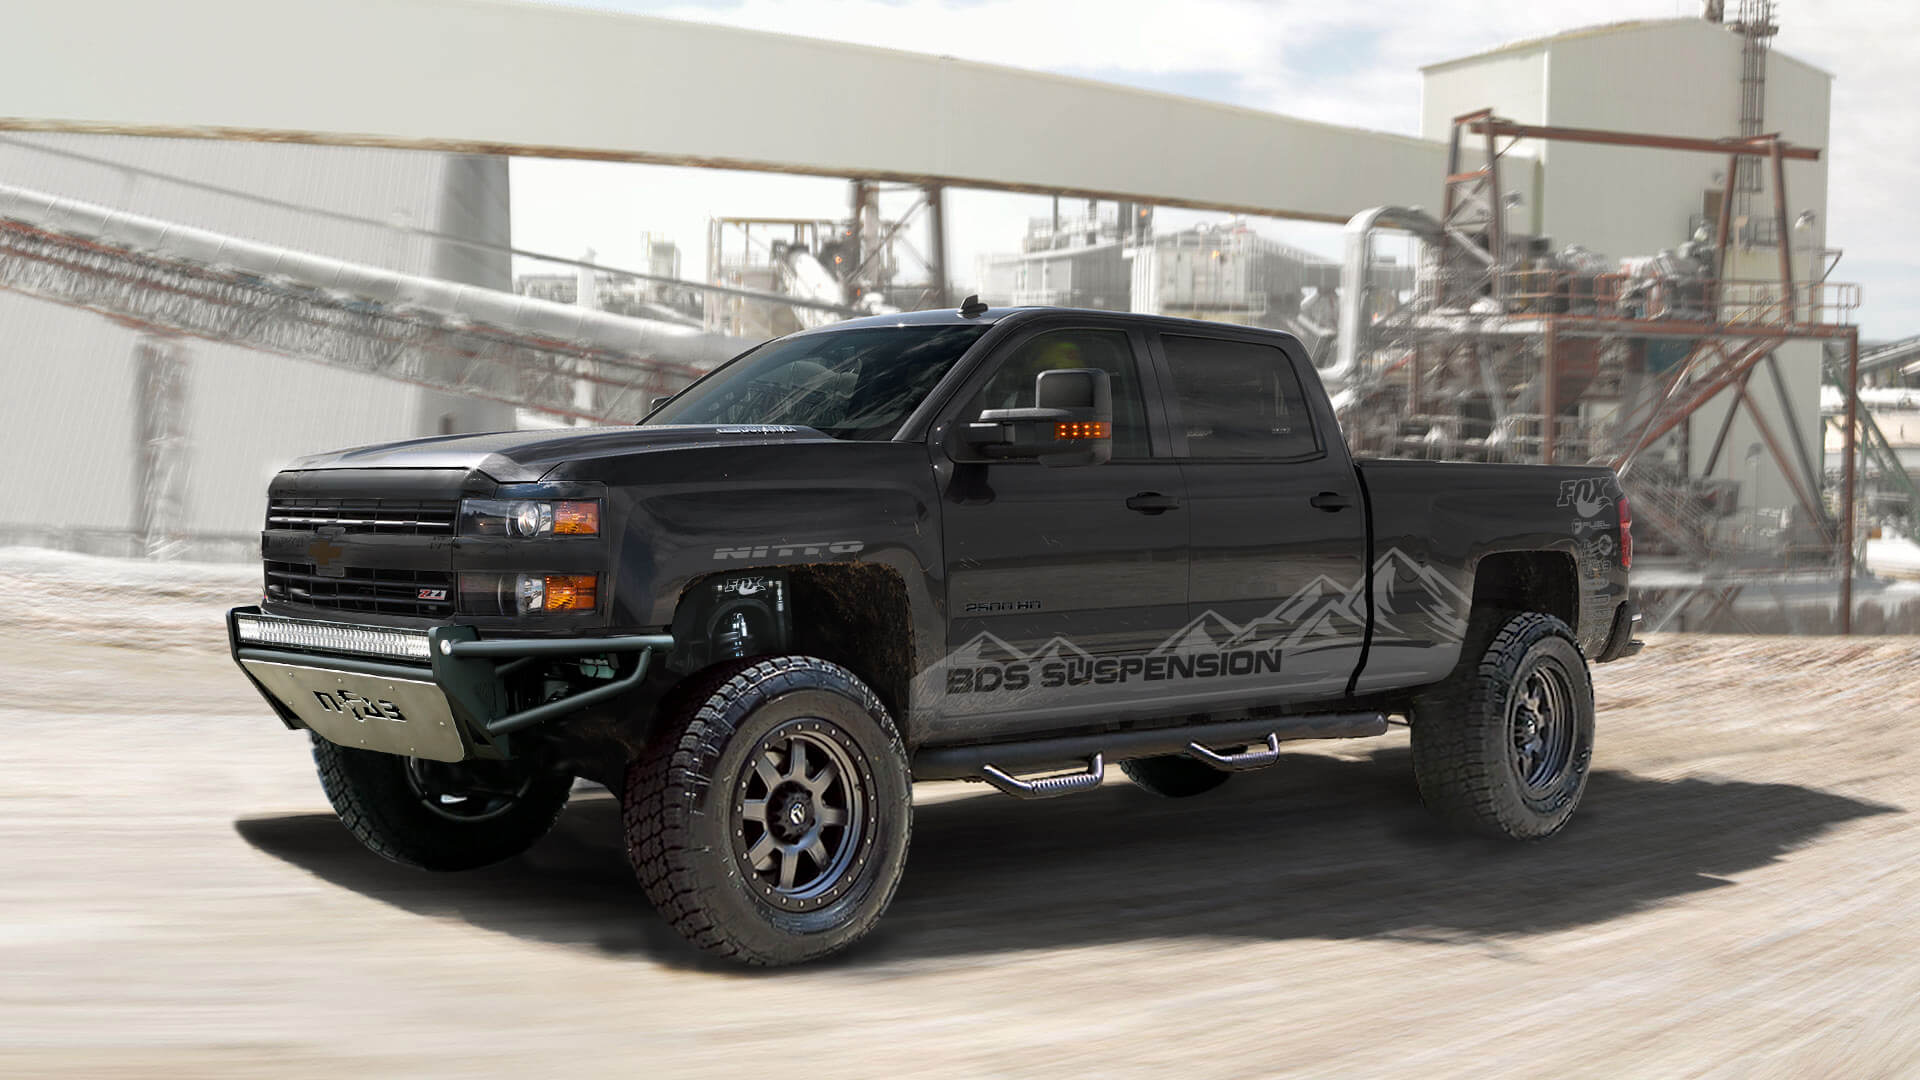 Best Lift Kit For Chevy 2500hd >> BDS SEMA Build - 2015 Chevy HD | BDS